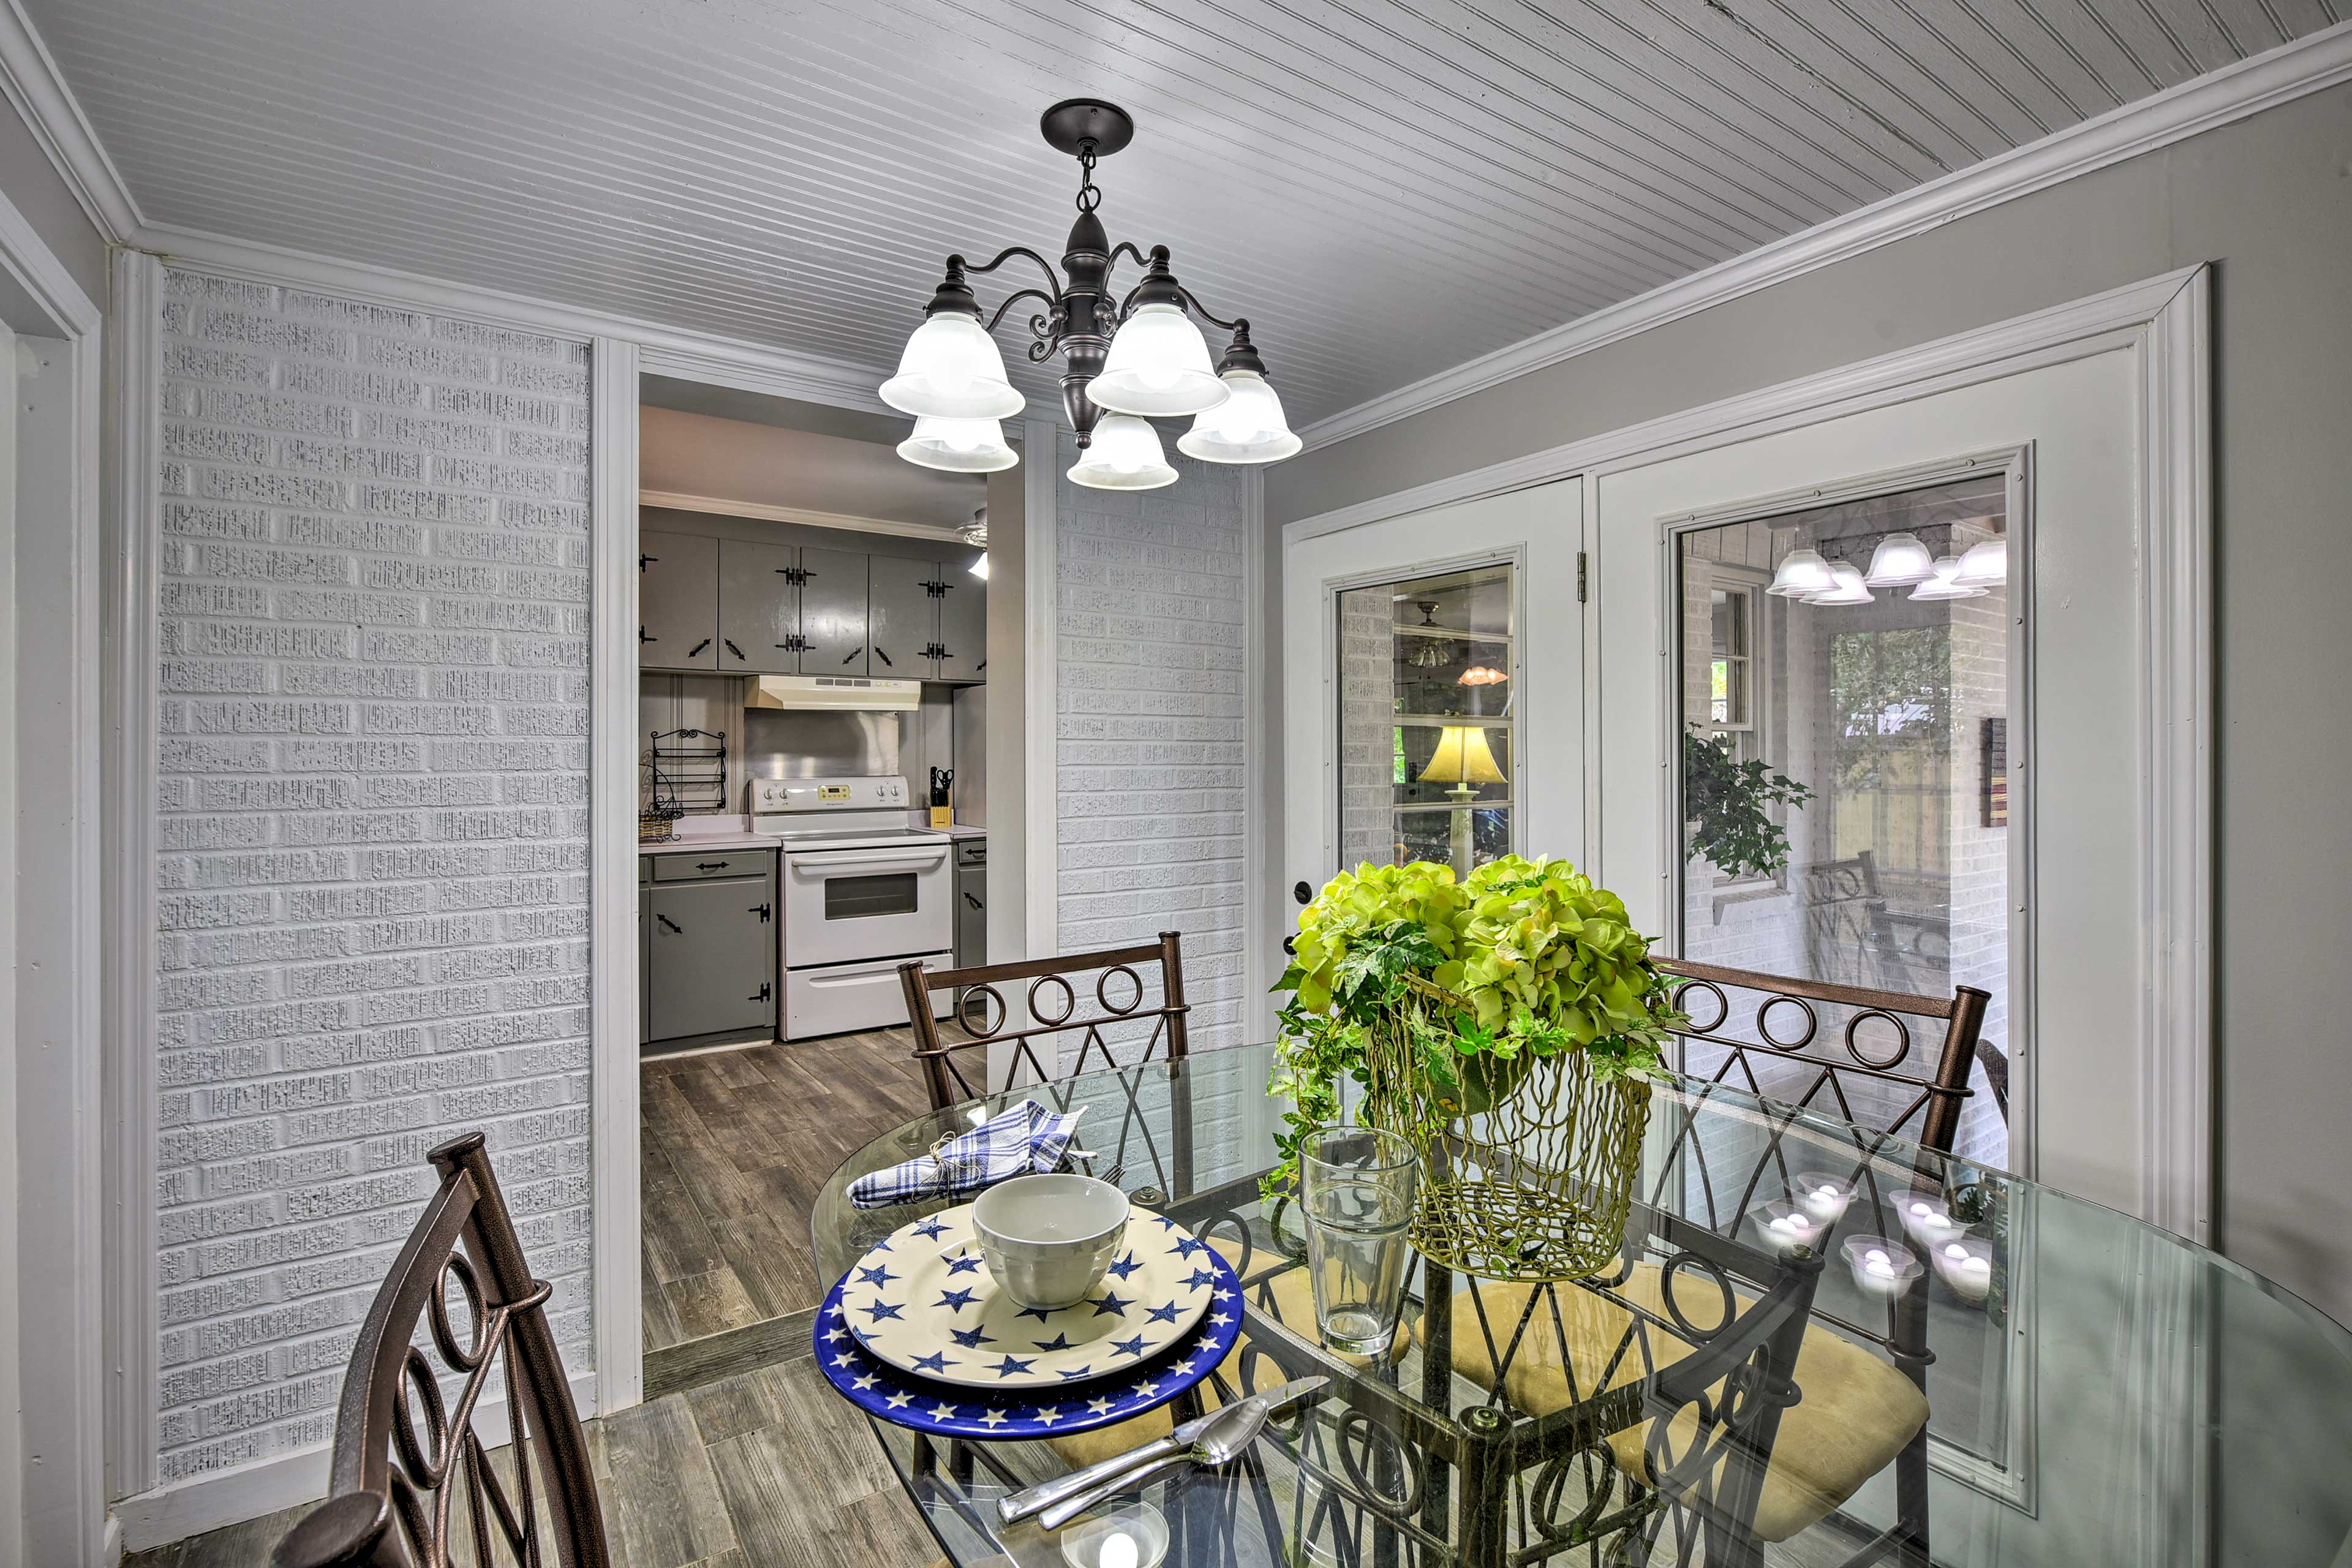 Enjoy the meal in the dining room.